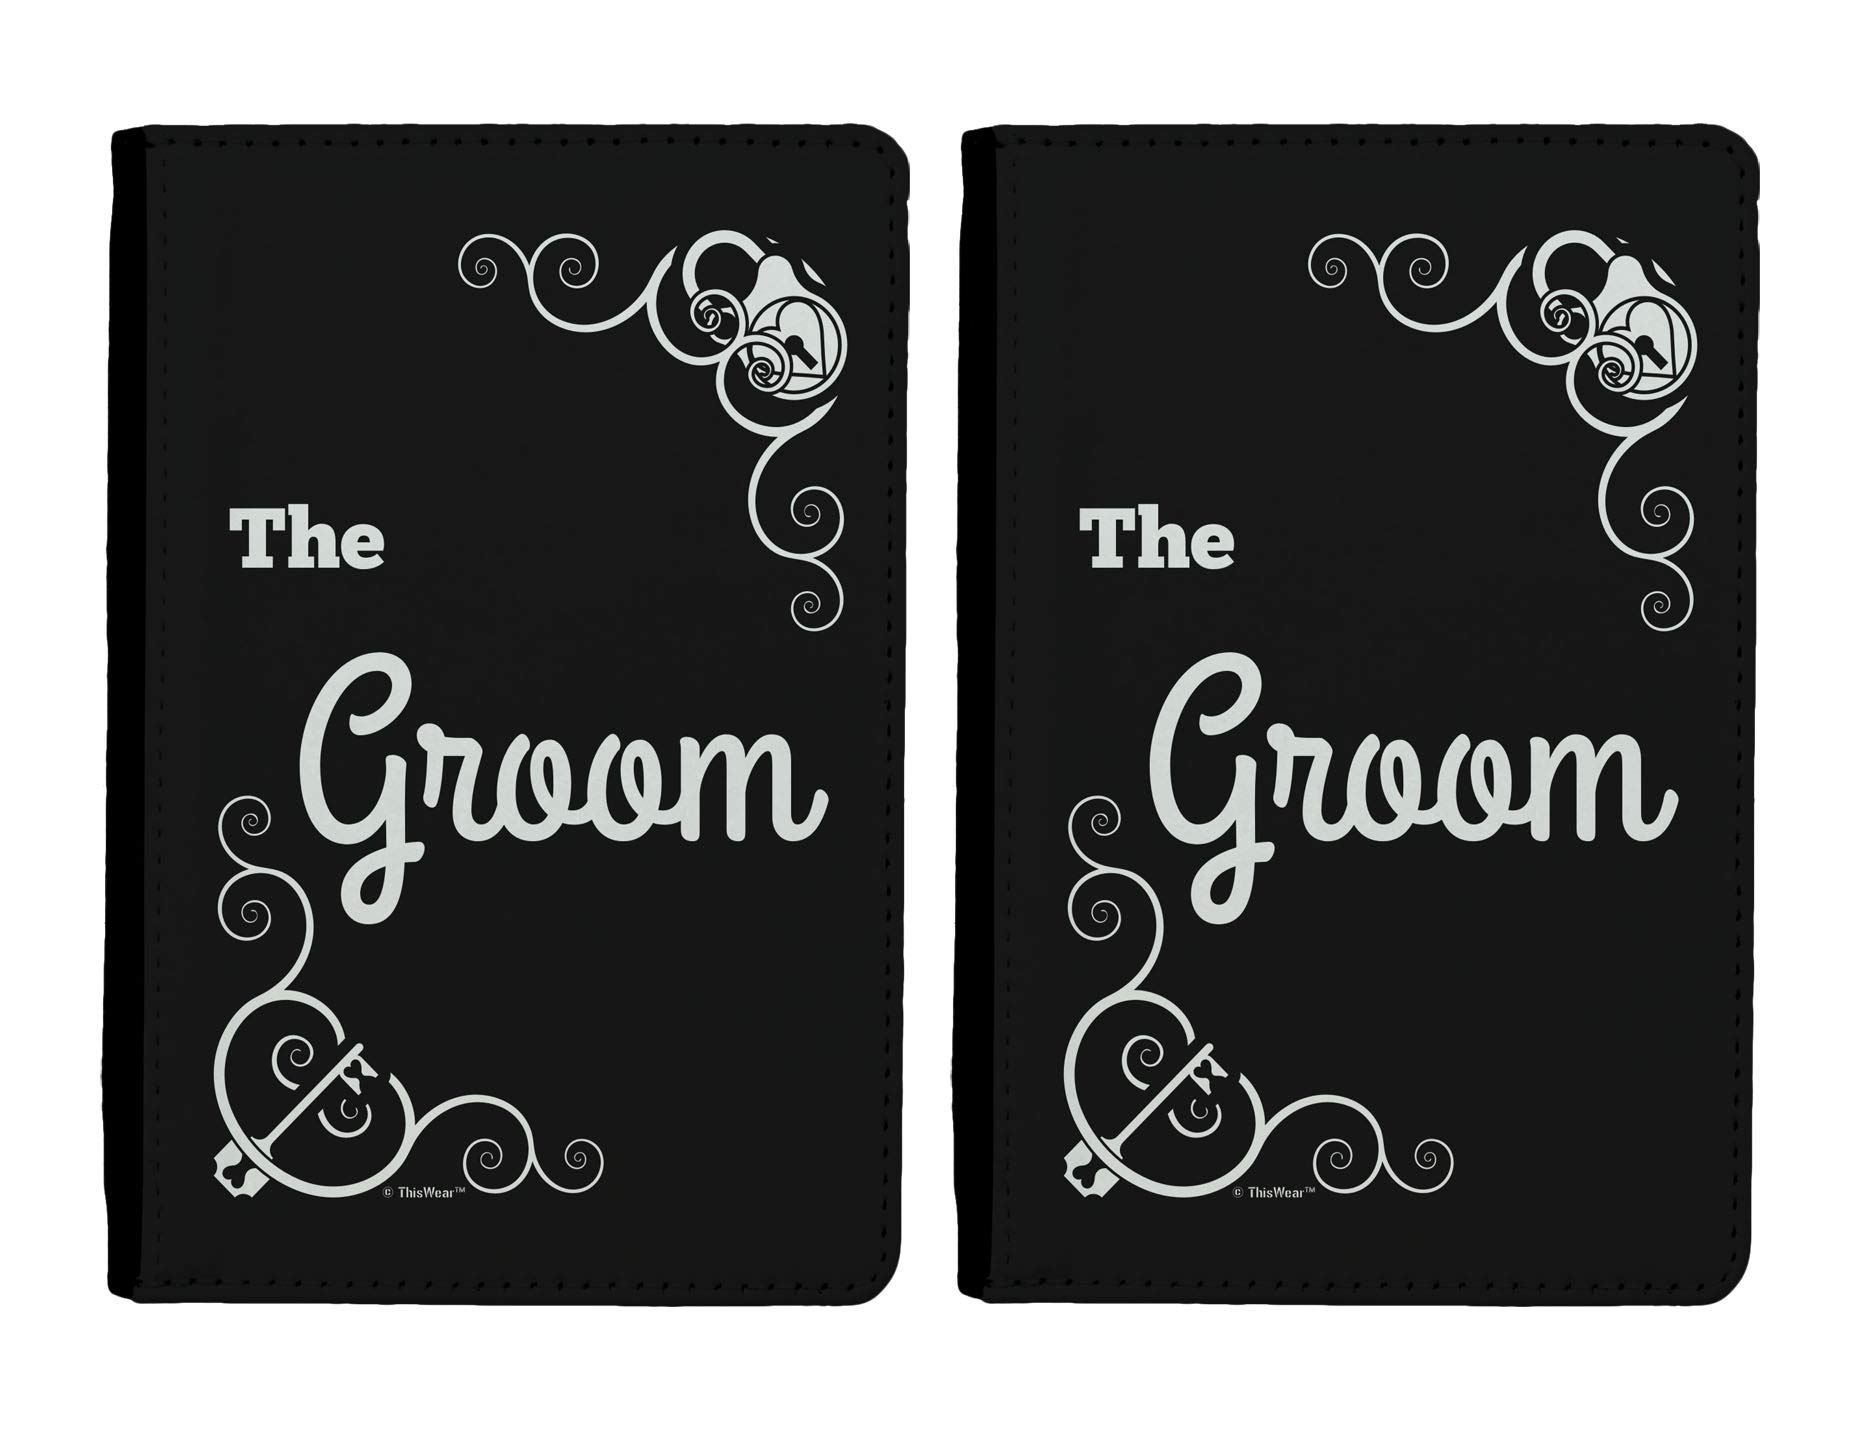 Travel Gifts for Men The Groom Wedding Gifts 2-pack Full Color Passport Covers Wallet Black & White